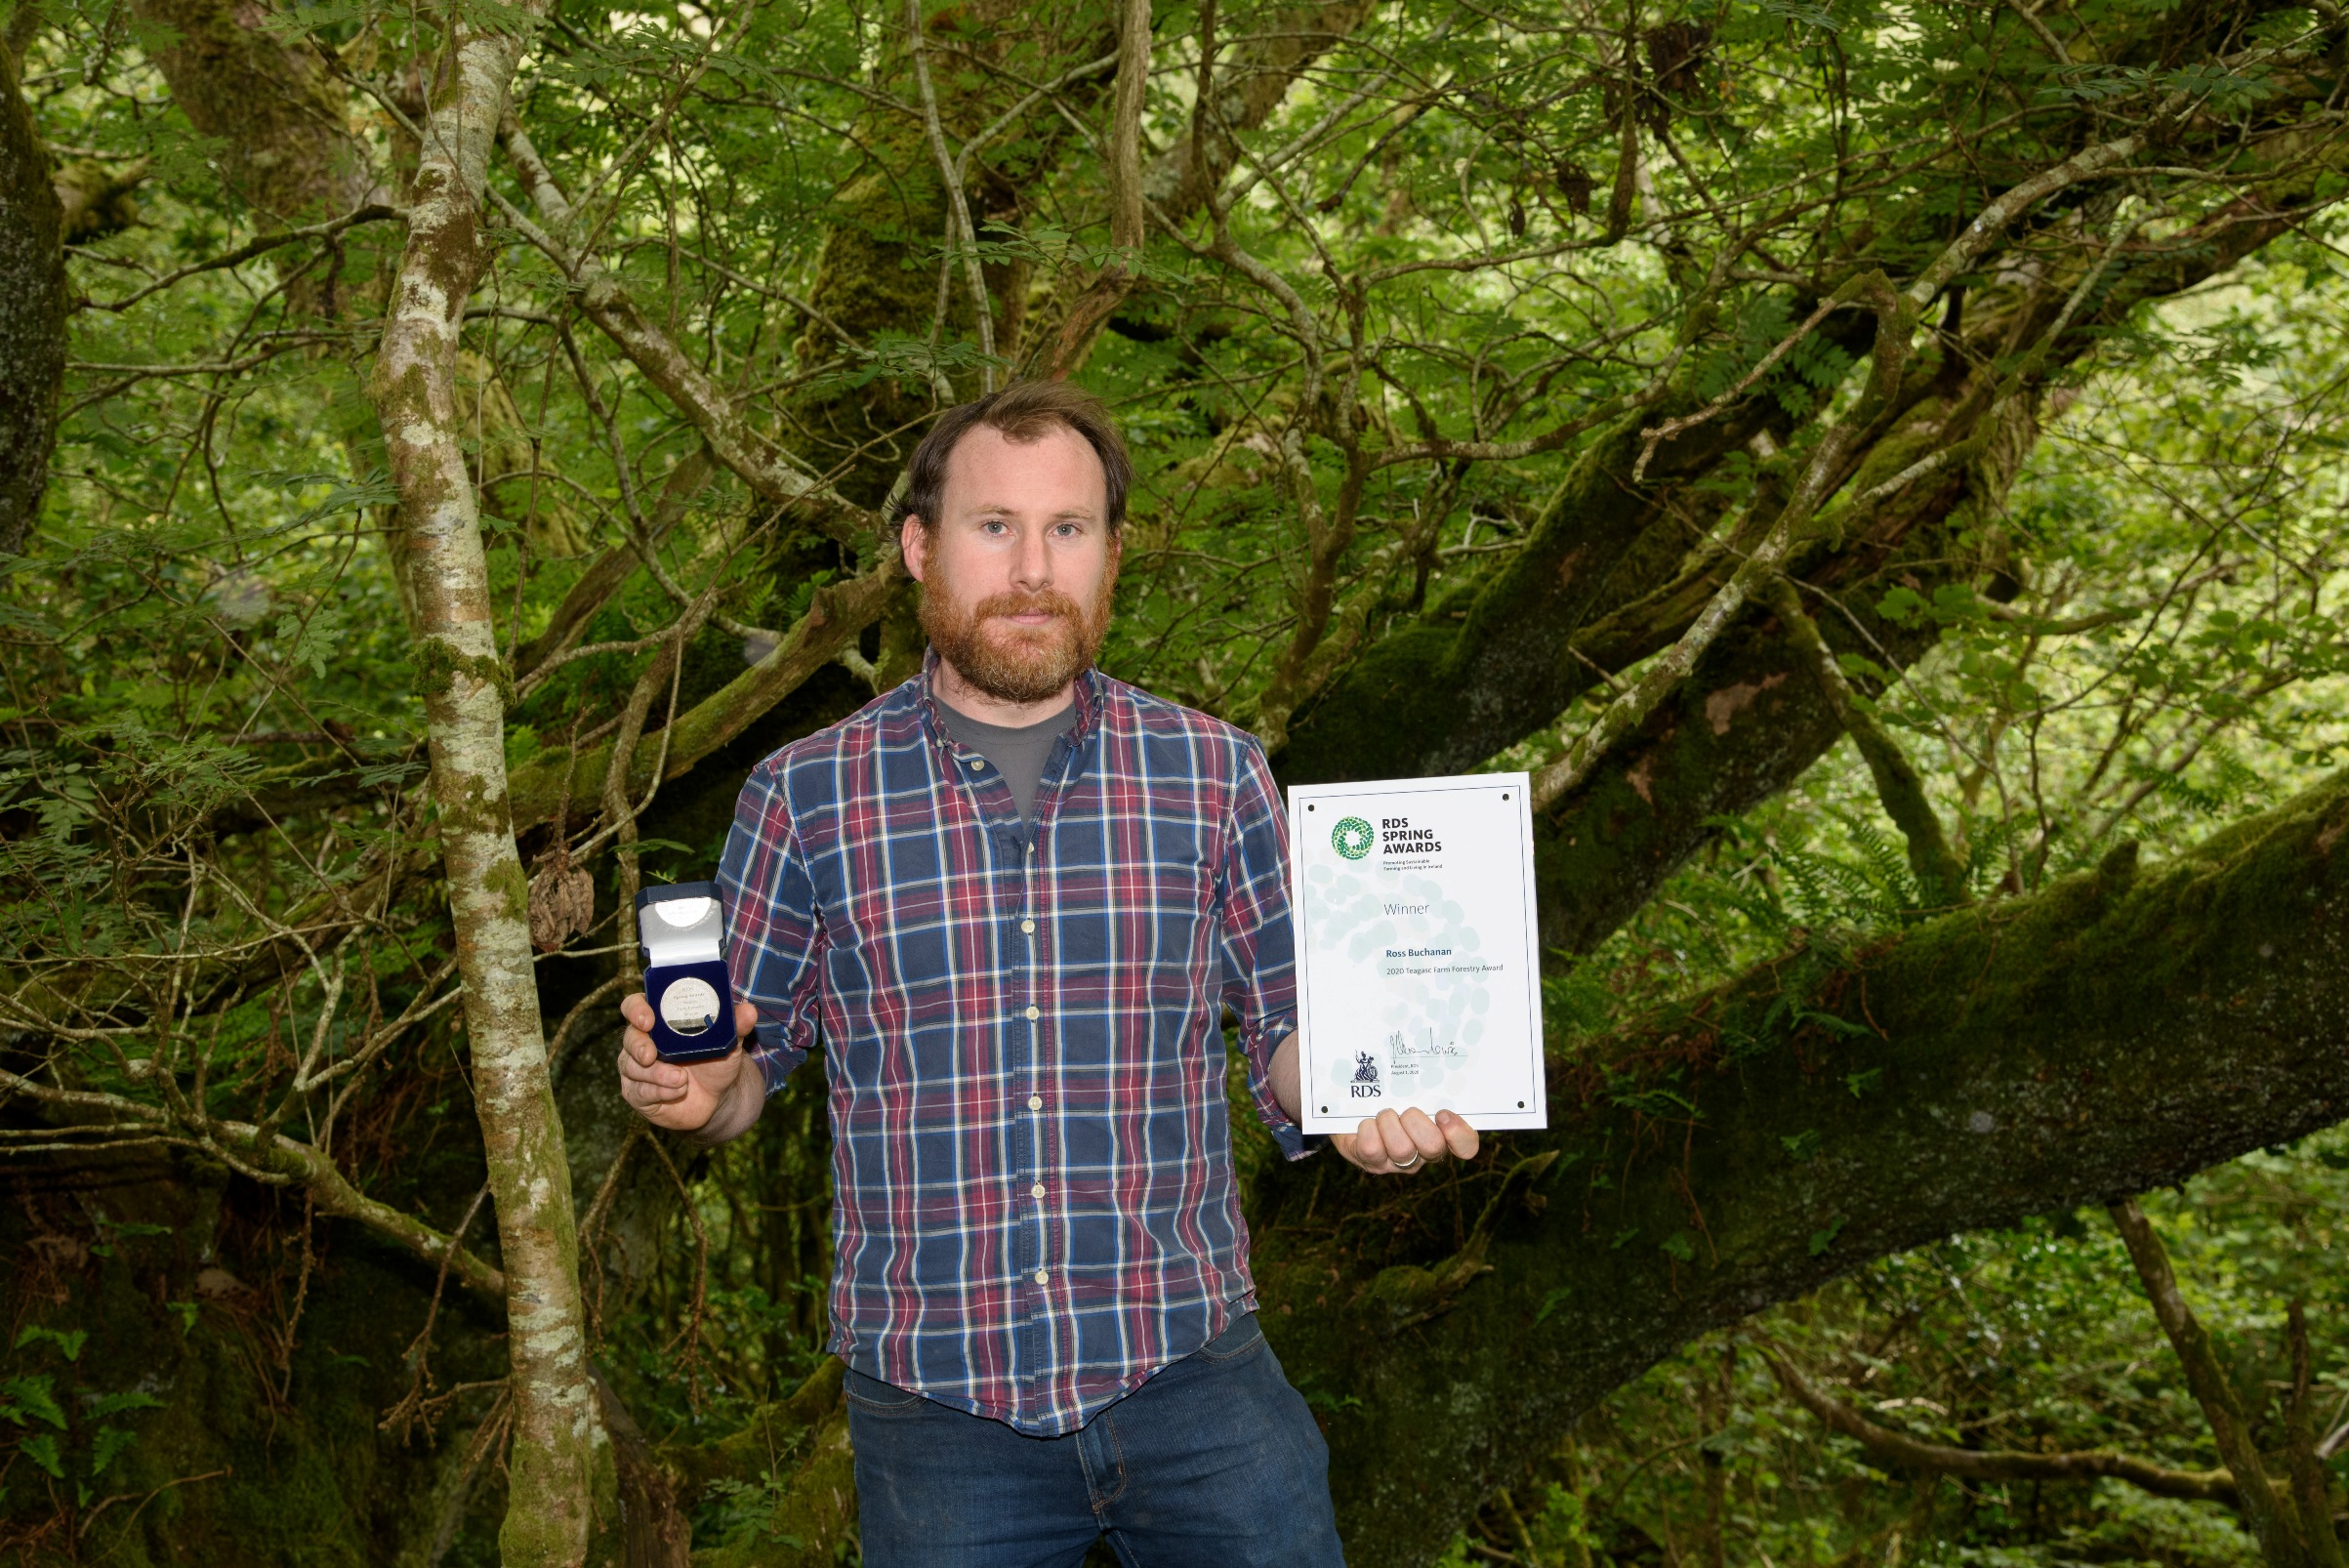 Winner of 2020 RDS Teagasc Farm Forestry Award announced